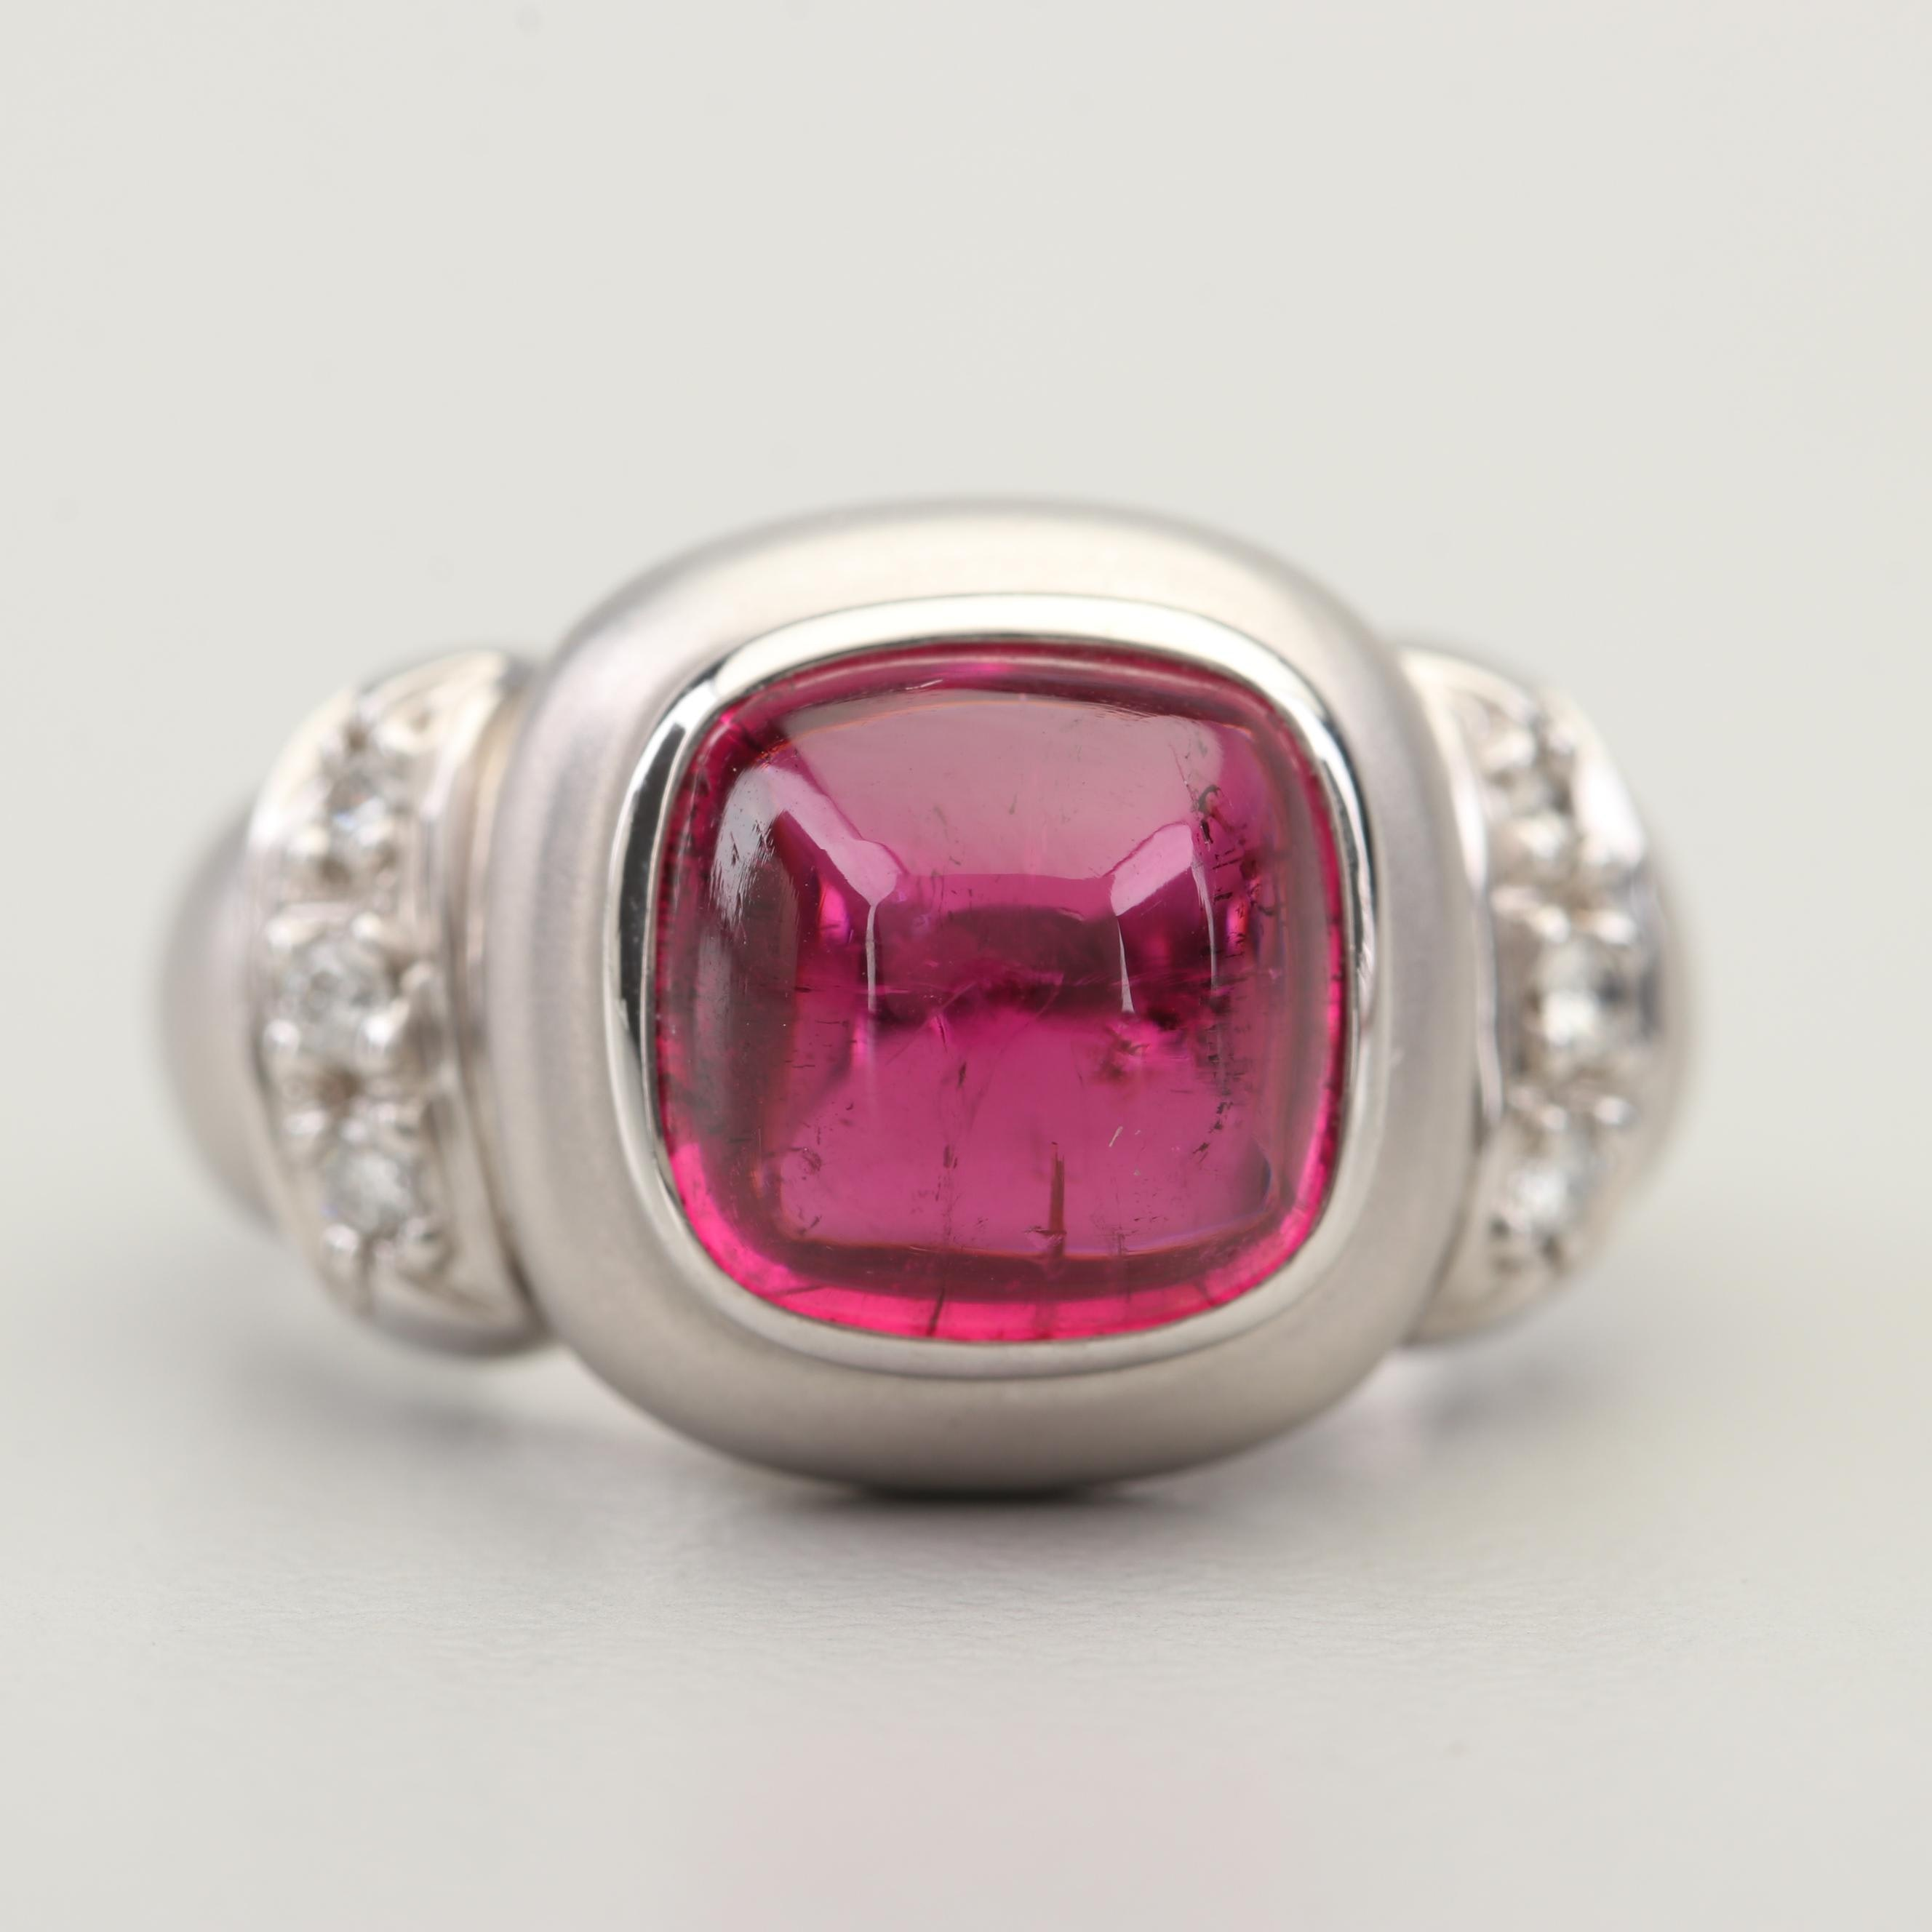 14K White Gold 3.25 CT Rubellite and Diamond Ring